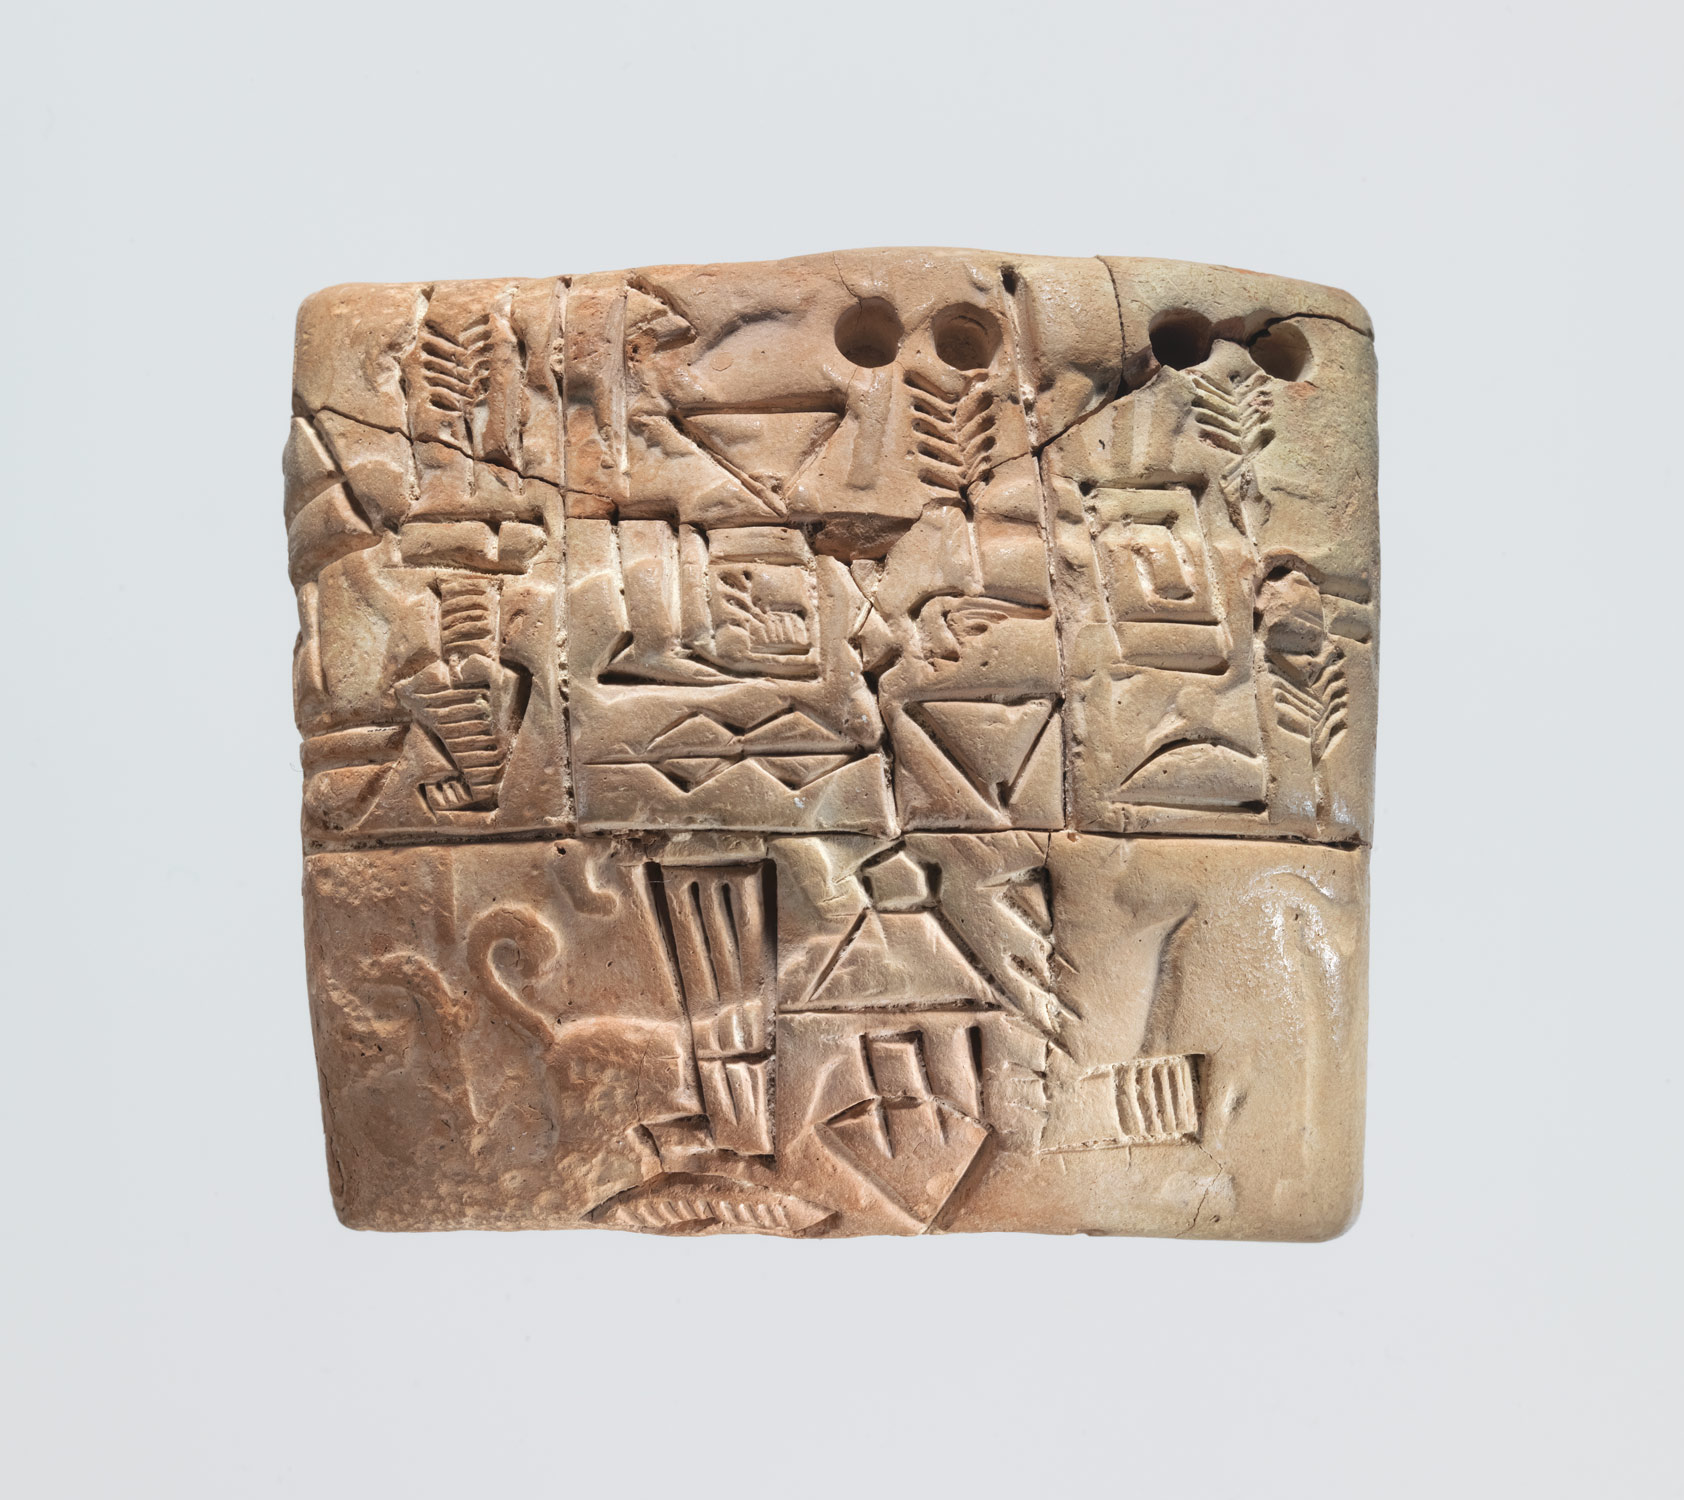 Art Of The First Cities In The Third Millennium Bc  Essay   Cuneiform Tablet Administrative Account Of Barley Distribution With  Cylinder Seal Impression Of A Male Figure  Health Essay Sample also Business Plan To Buy A Franchise  Essay On My School In English